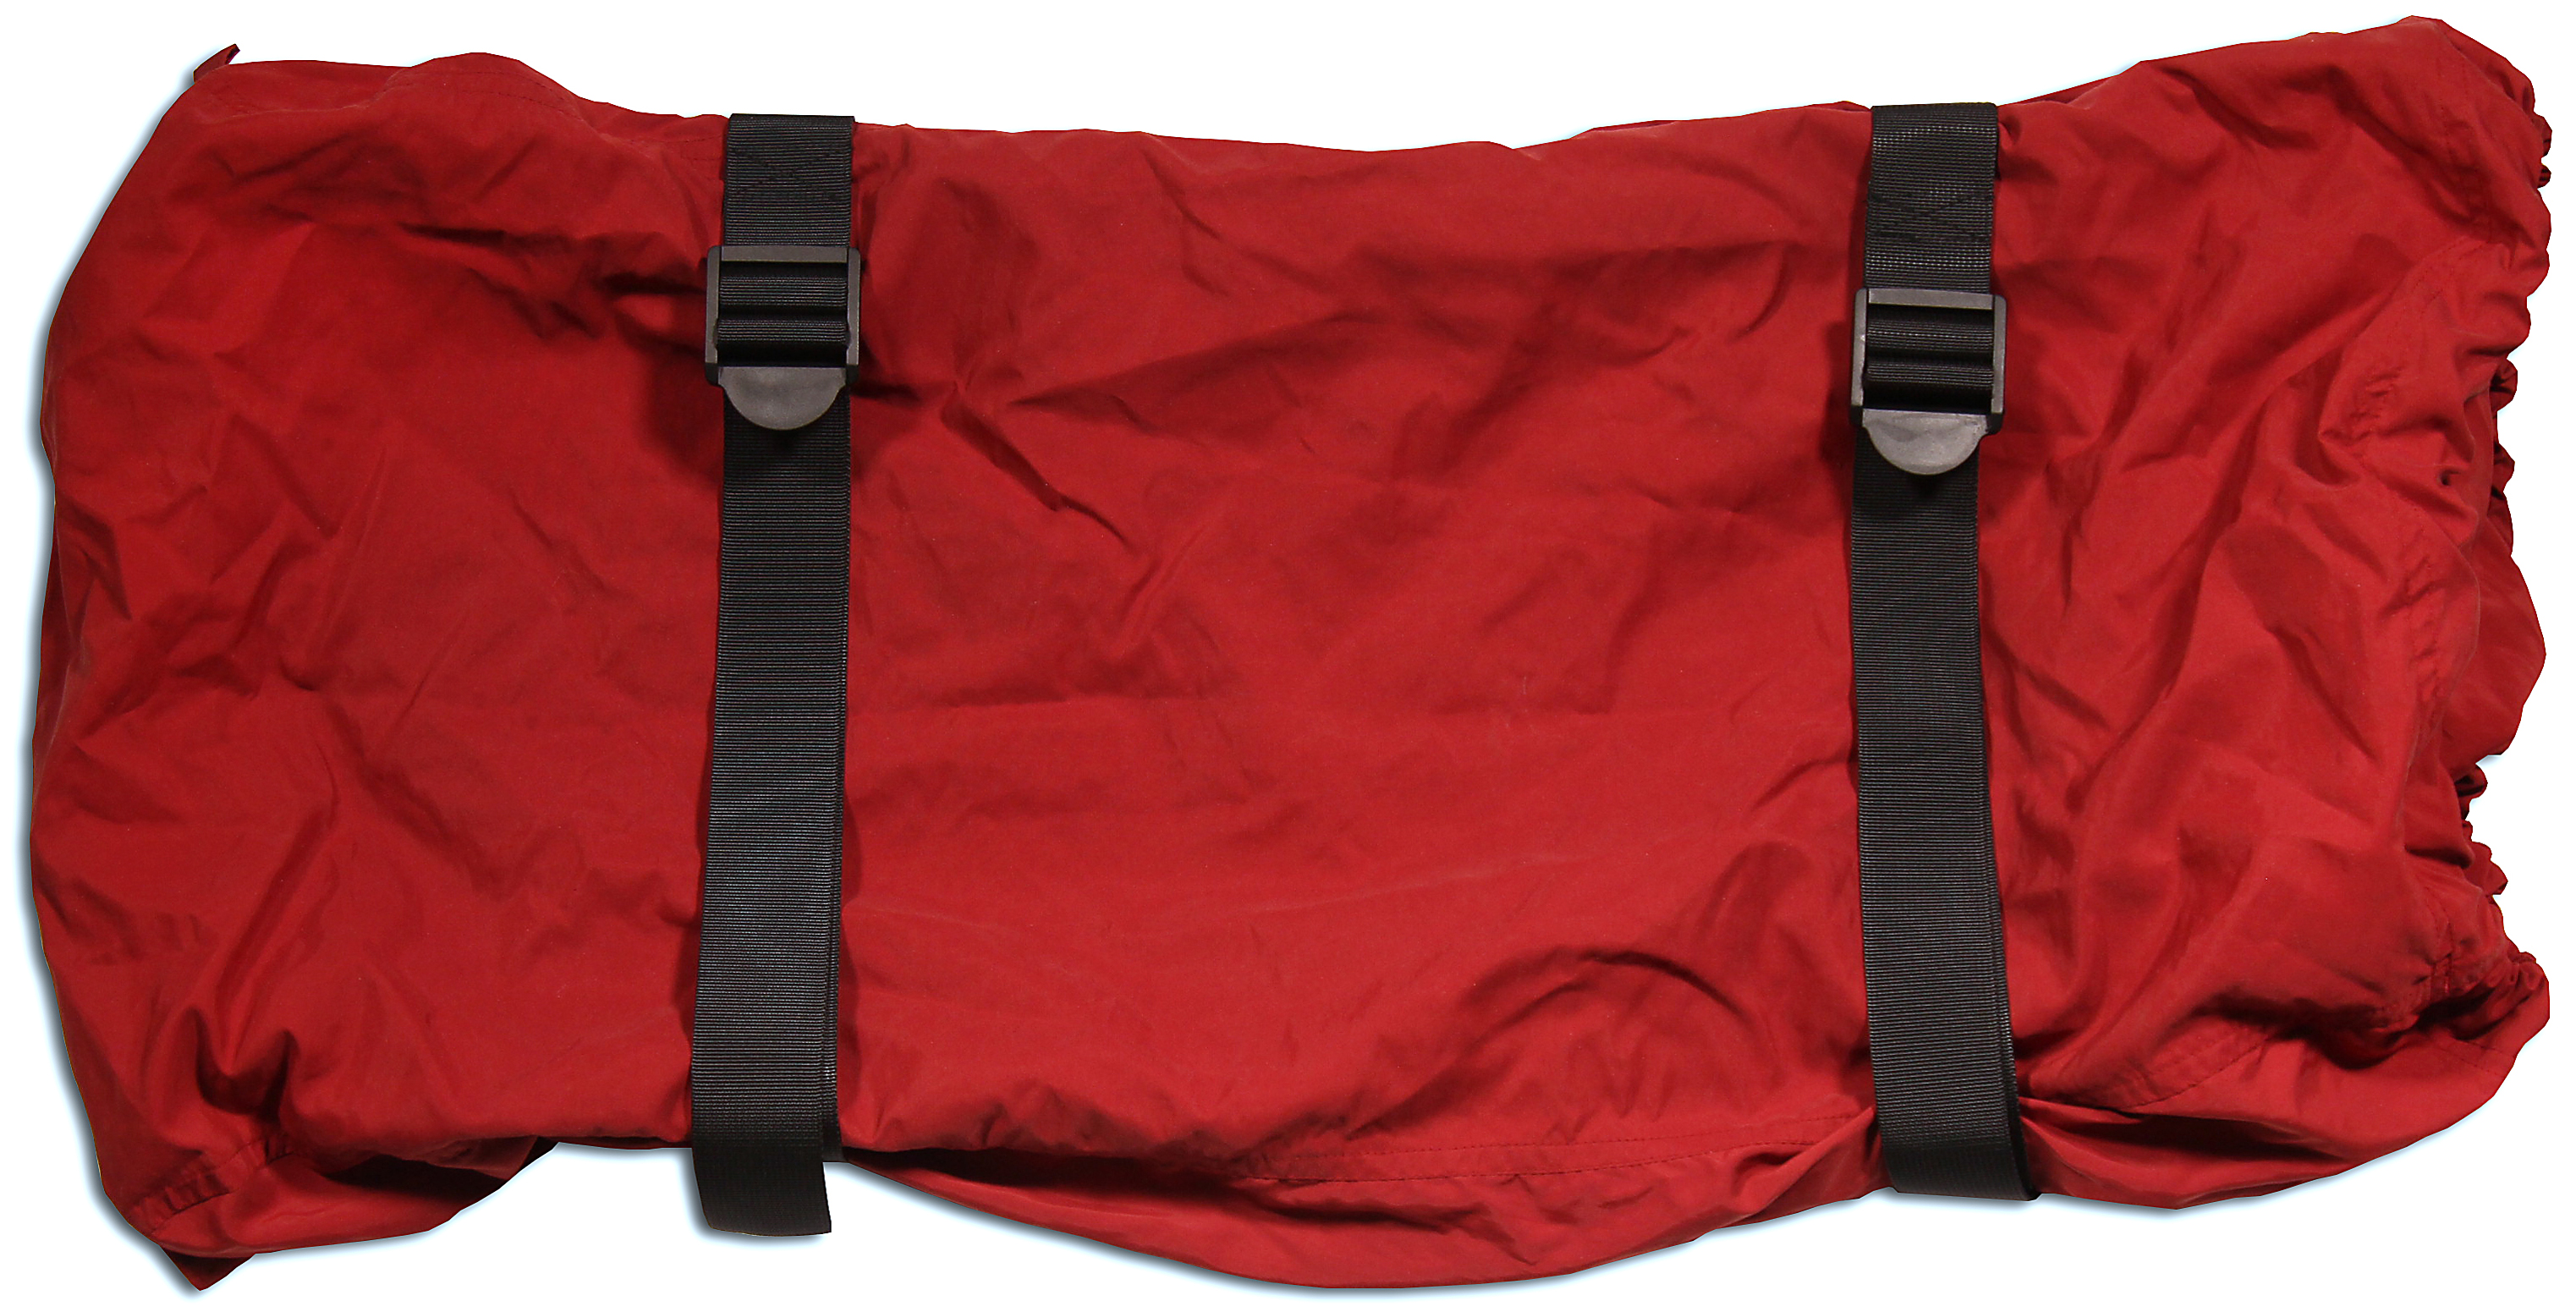 NEW – Blood Red Game Bags for Hunters, under $20!